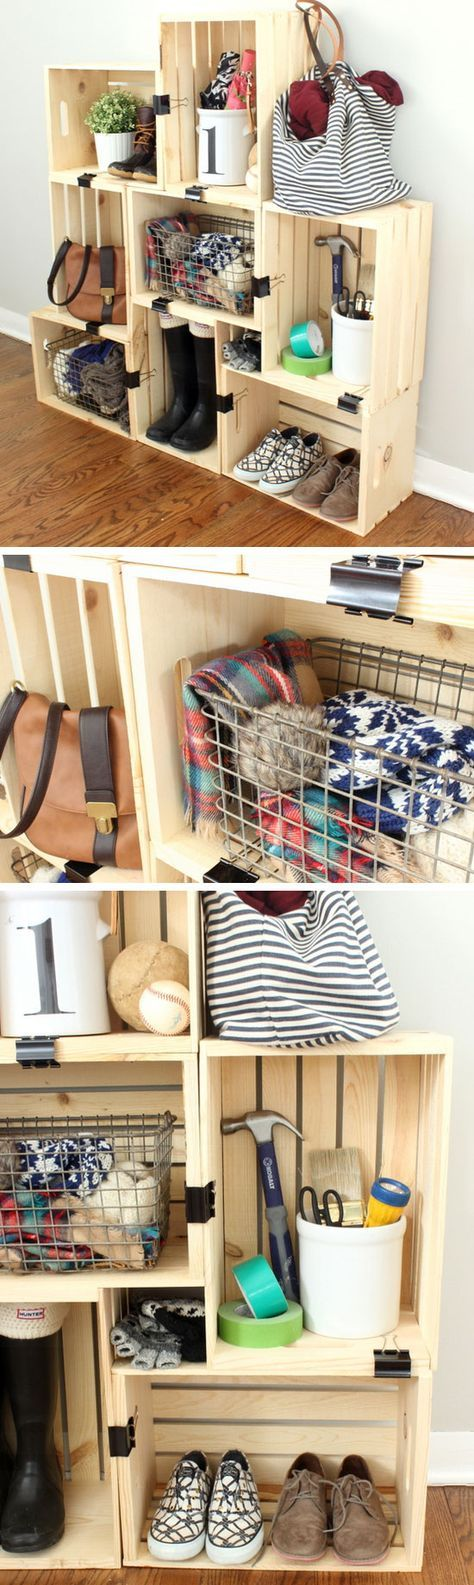 Easy Crate Storage with Binder Clips | Small Apartment Decorating Ideas on a Budget